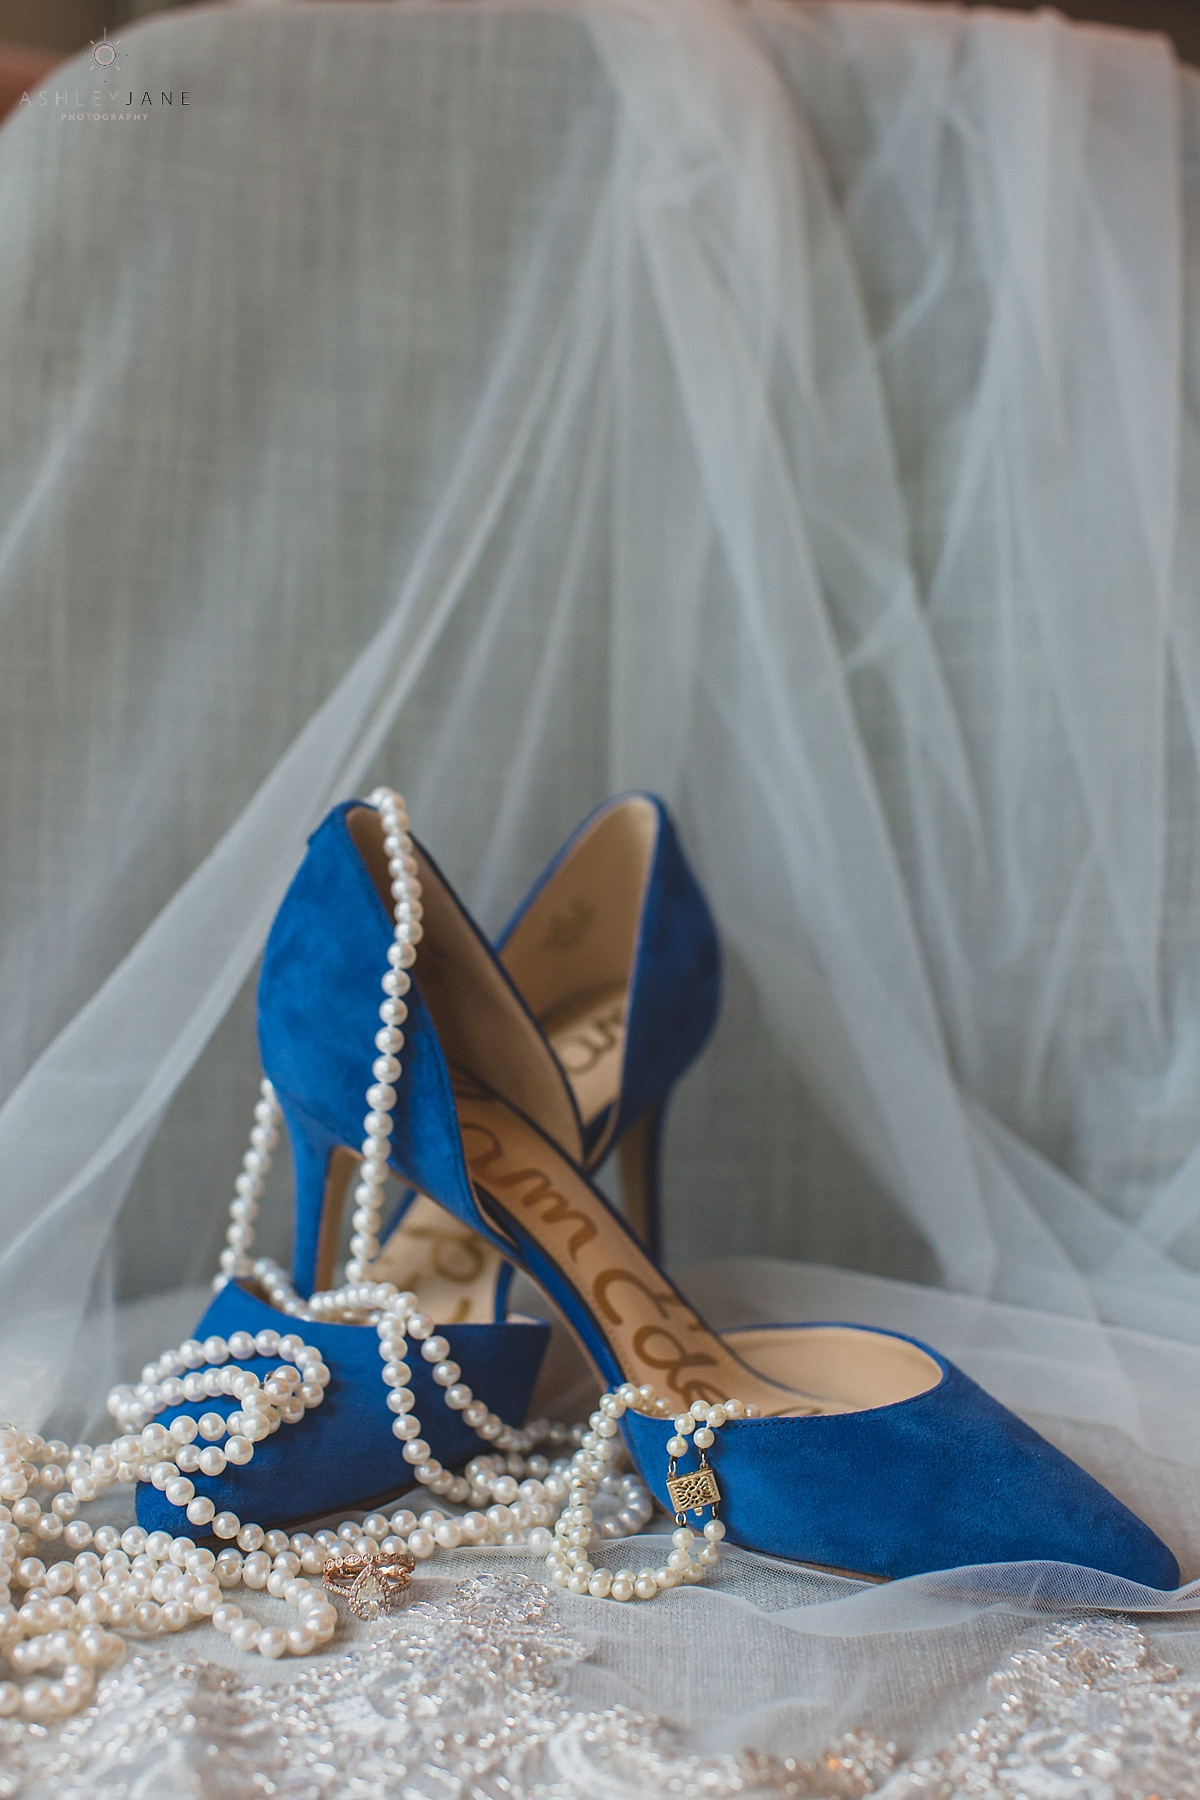 Sam Edelman blue heels and pearls for bride's accessories